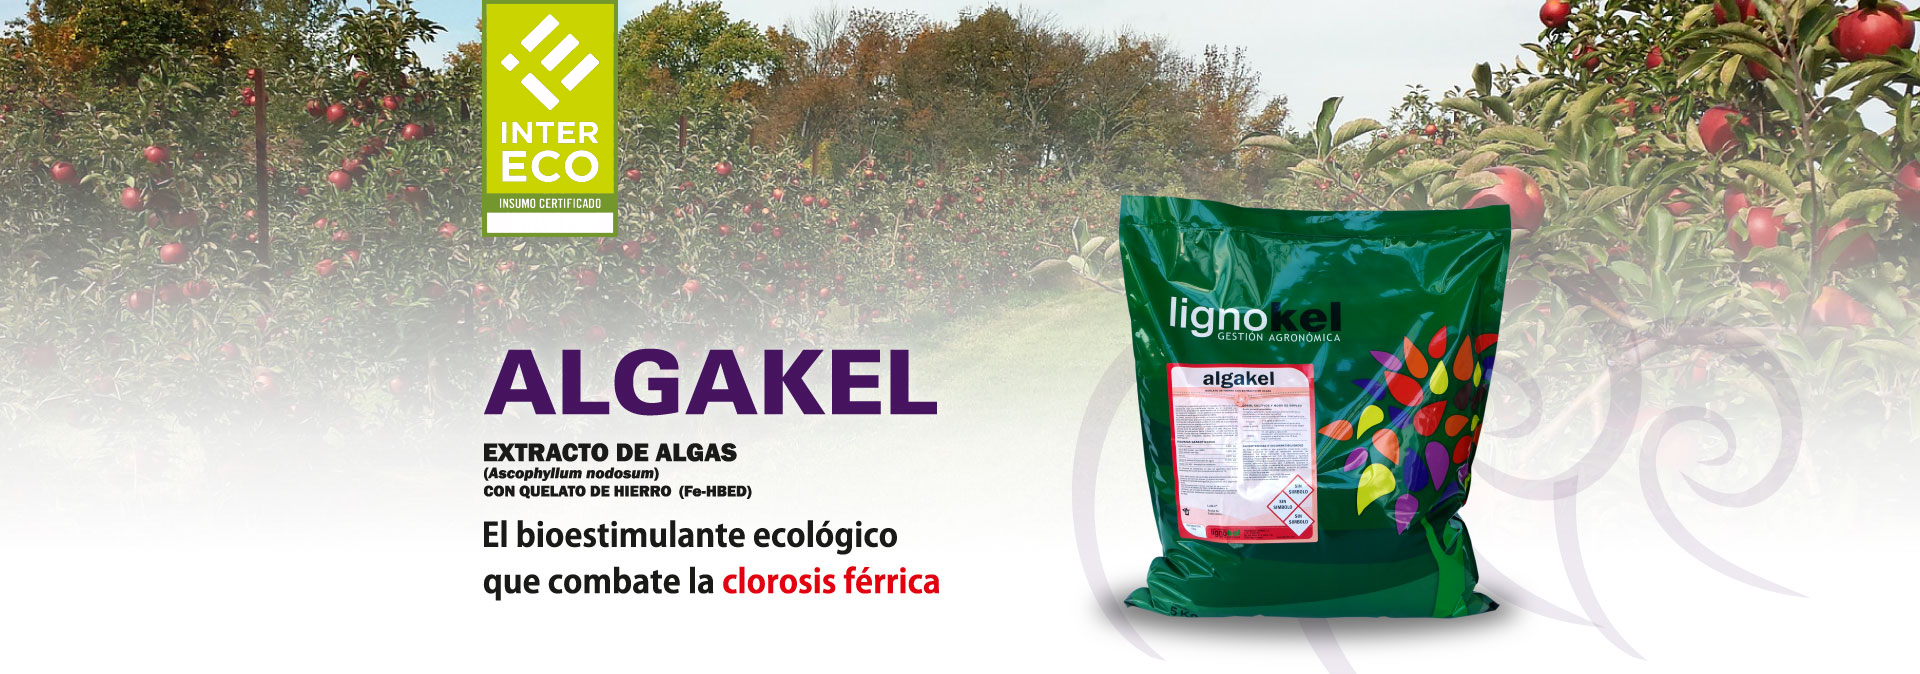 slide algakel